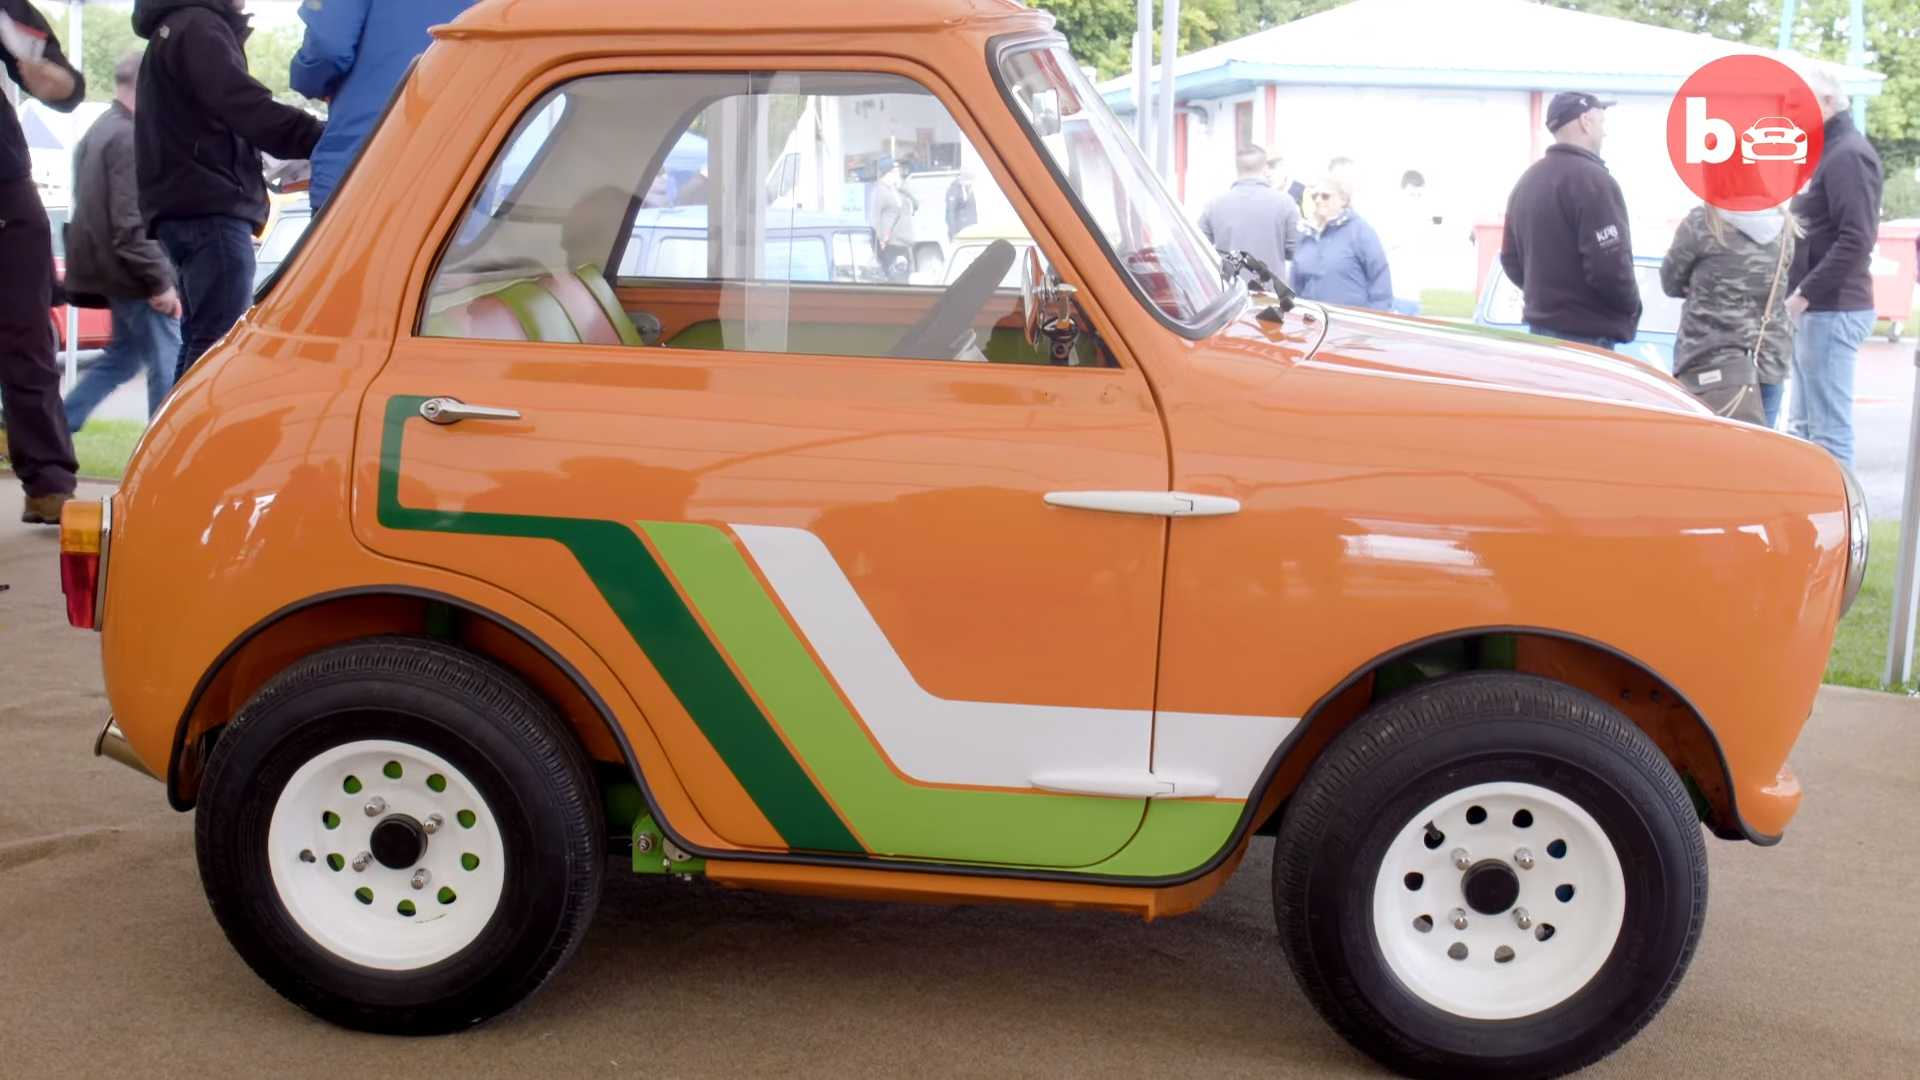 The British car marque Mini has gained worldwide popularity thanks to the modest-sized cars it produced – but this particular modded sample puts them all to shame. Called the Mini Ha Ha by its owner, the car had most of its body and the rear seat row thrown away.